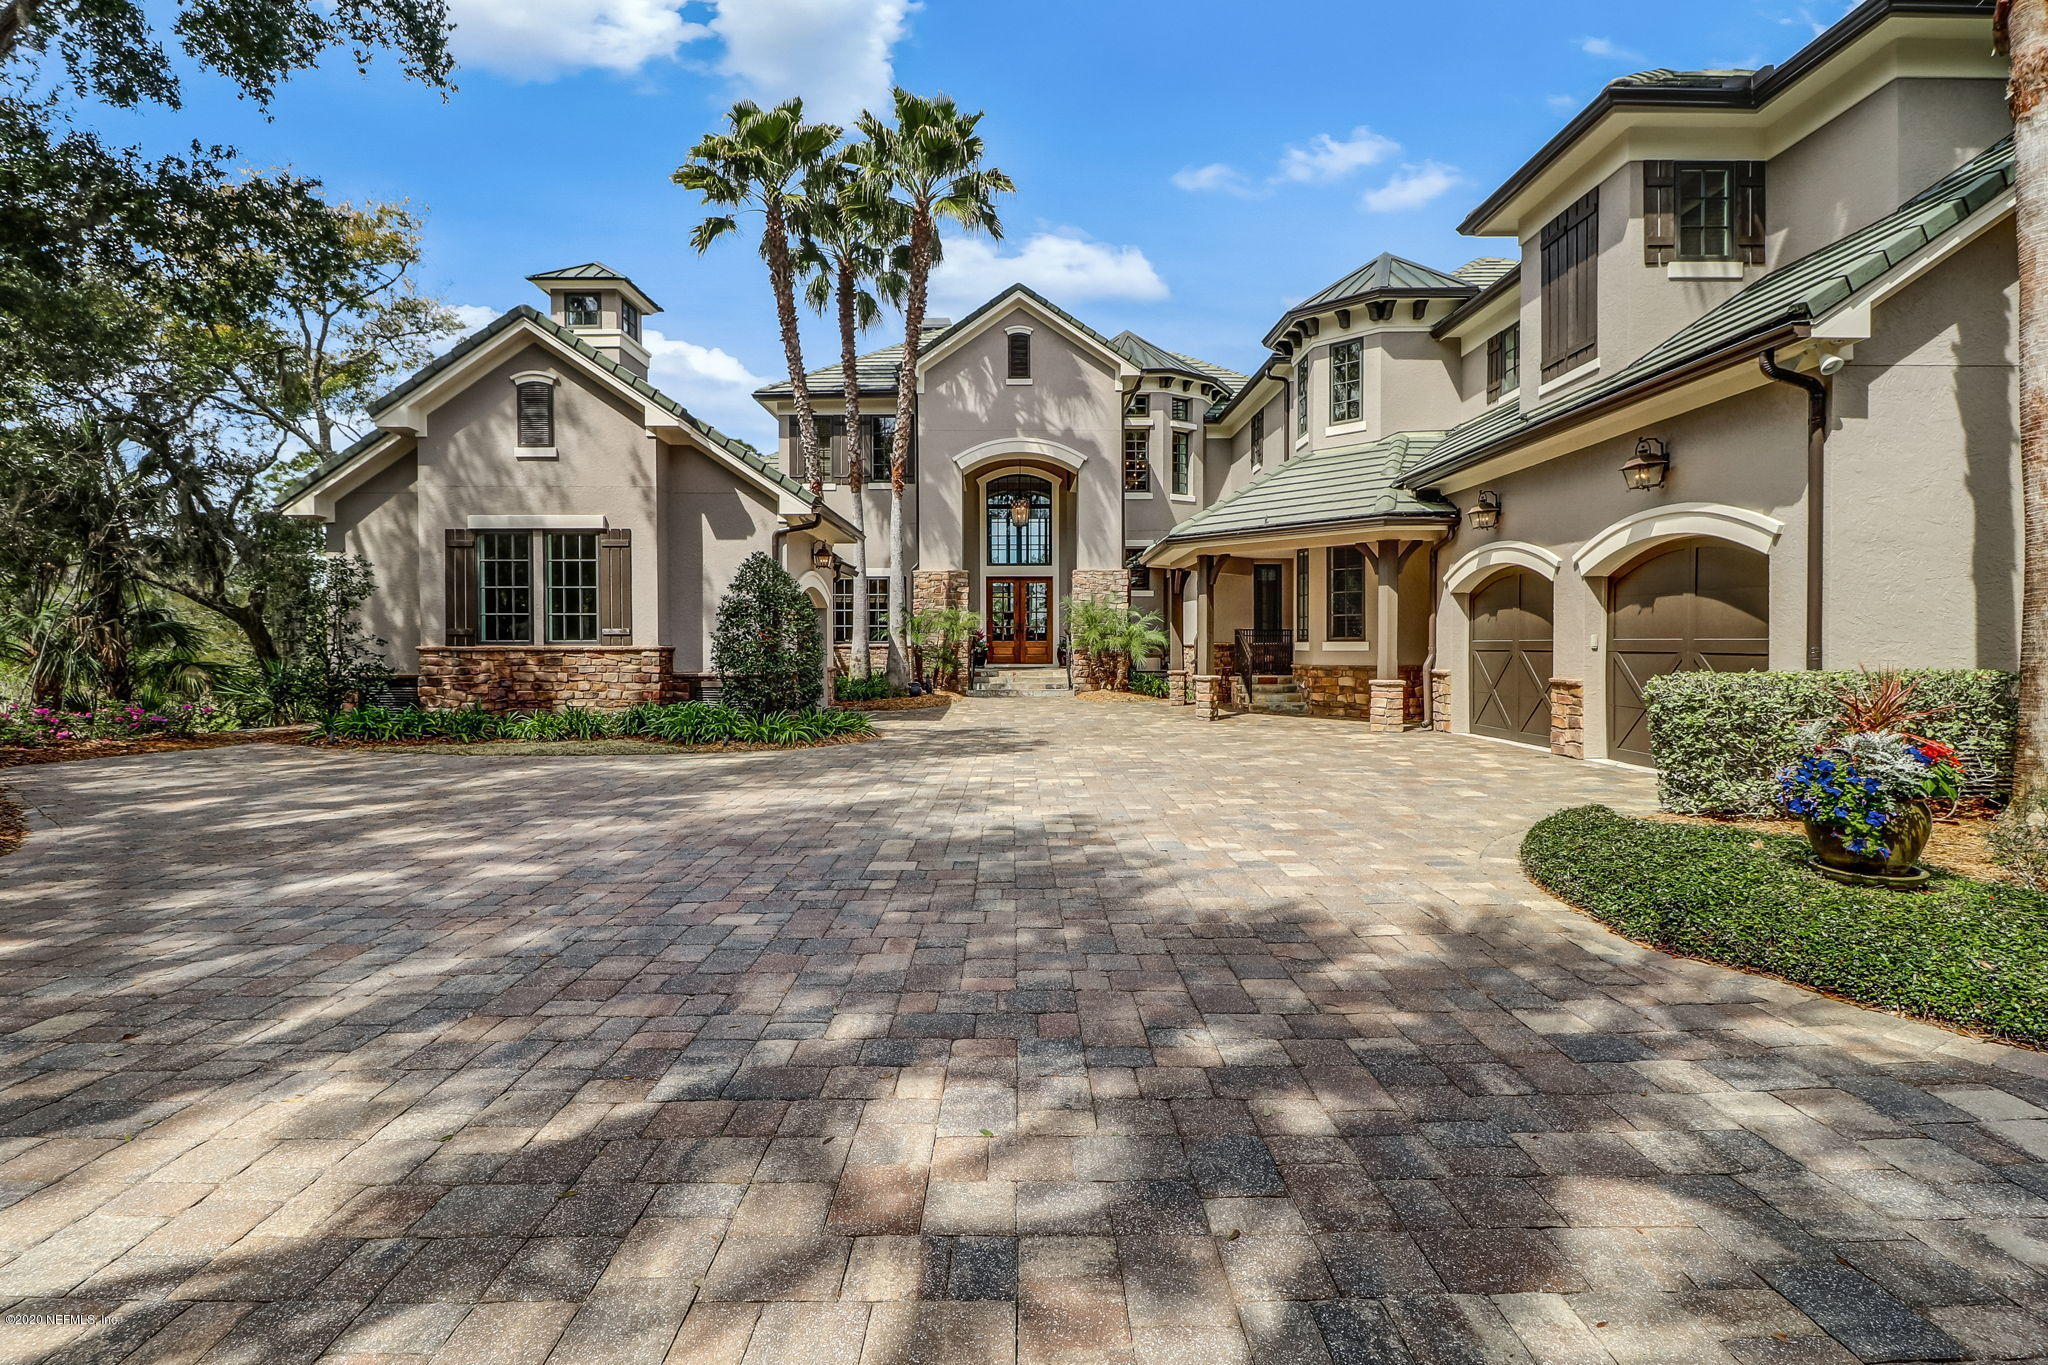 9 SOUND POINT, FERNANDINA BEACH, FLORIDA 32034, 6 Bedrooms Bedrooms, ,6 BathroomsBathrooms,Residential,For sale,SOUND POINT,1060497